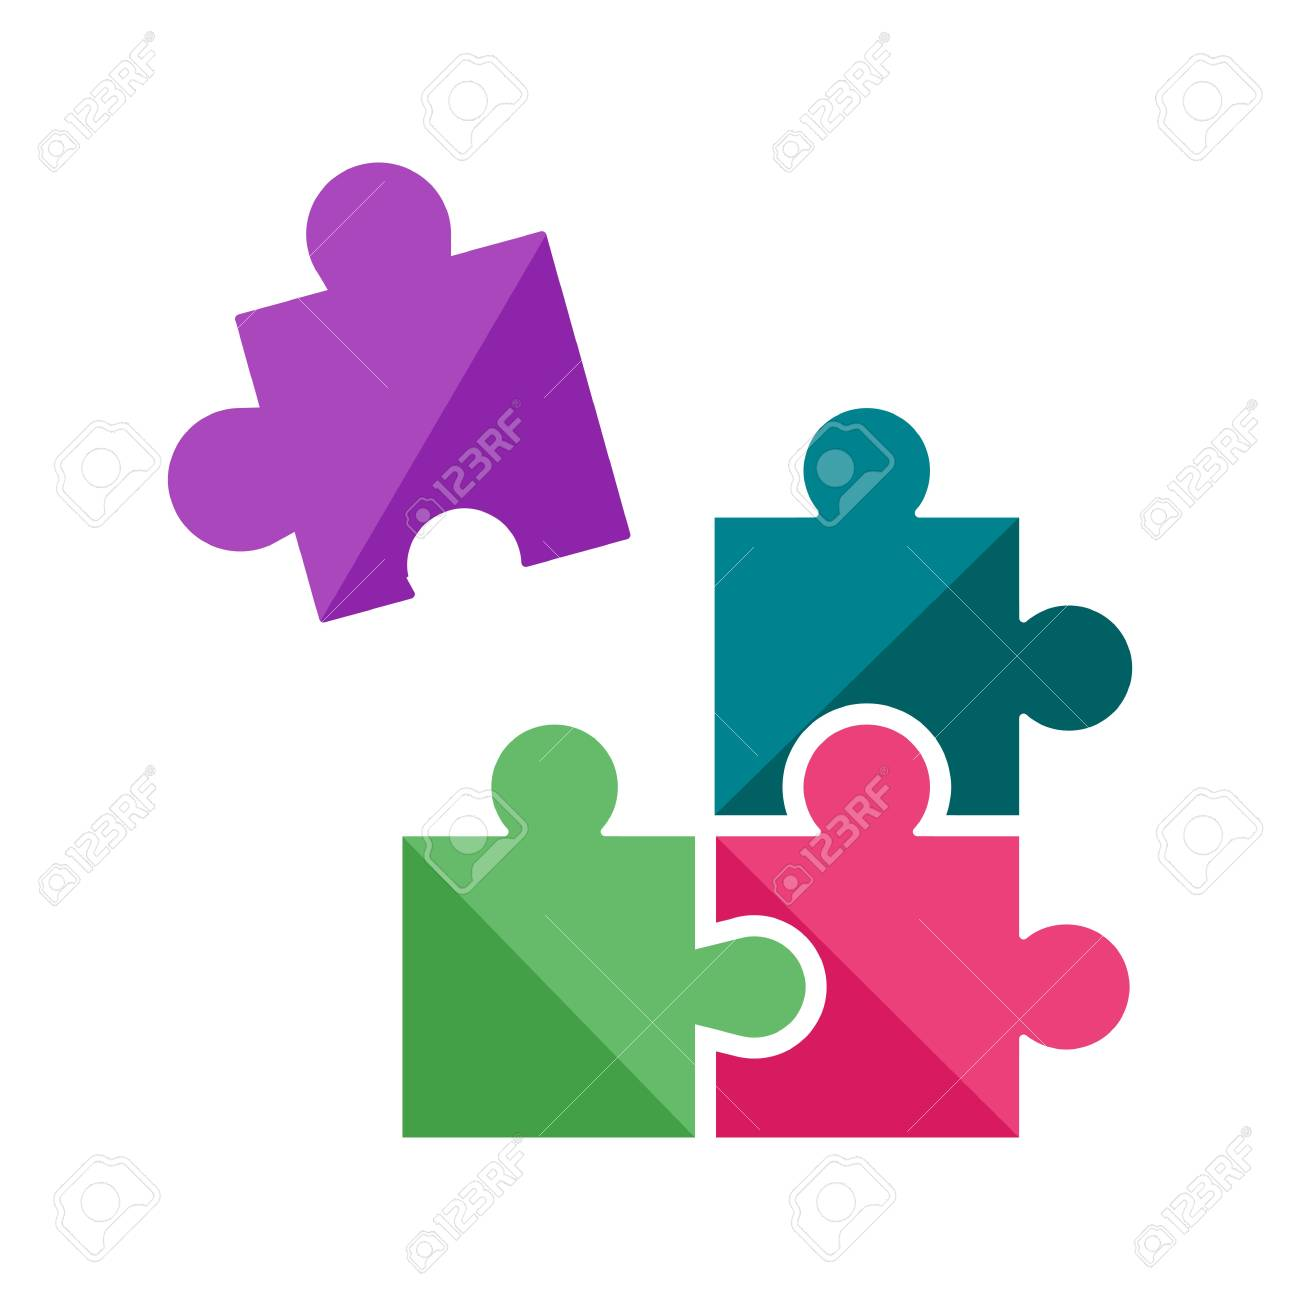 Thinking, logic, skills icon vector image  Can also be used for